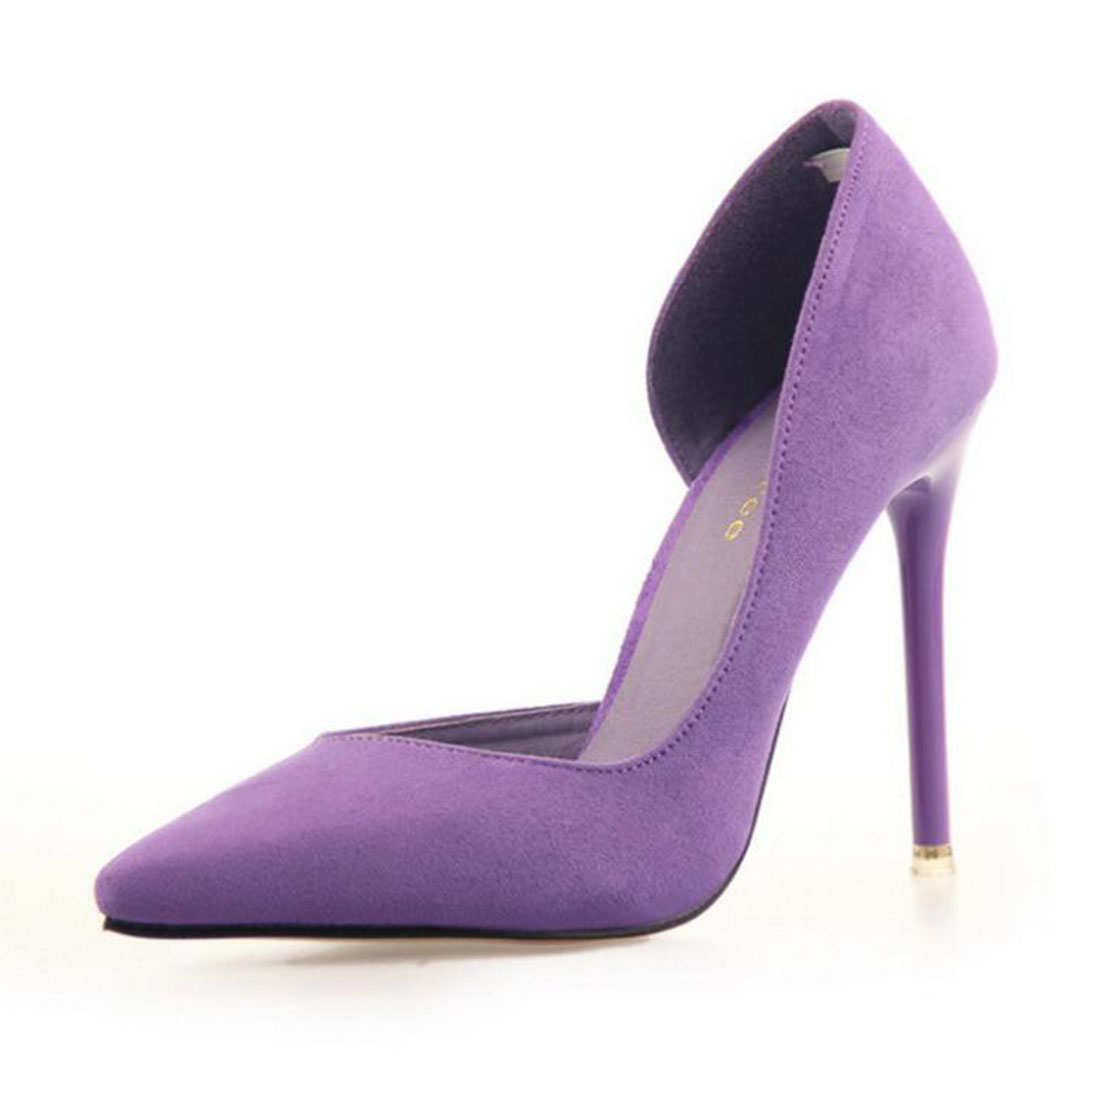 Women Wedding Shoes Suede Pump High Heels OL Lady Office Shoes Pointy Chic Court Stiletto Candy Color Party Classic Shoes women wedding shoes suede pump high heels ol lady office shoes pointy chic court stiletto candy color party classic shoes